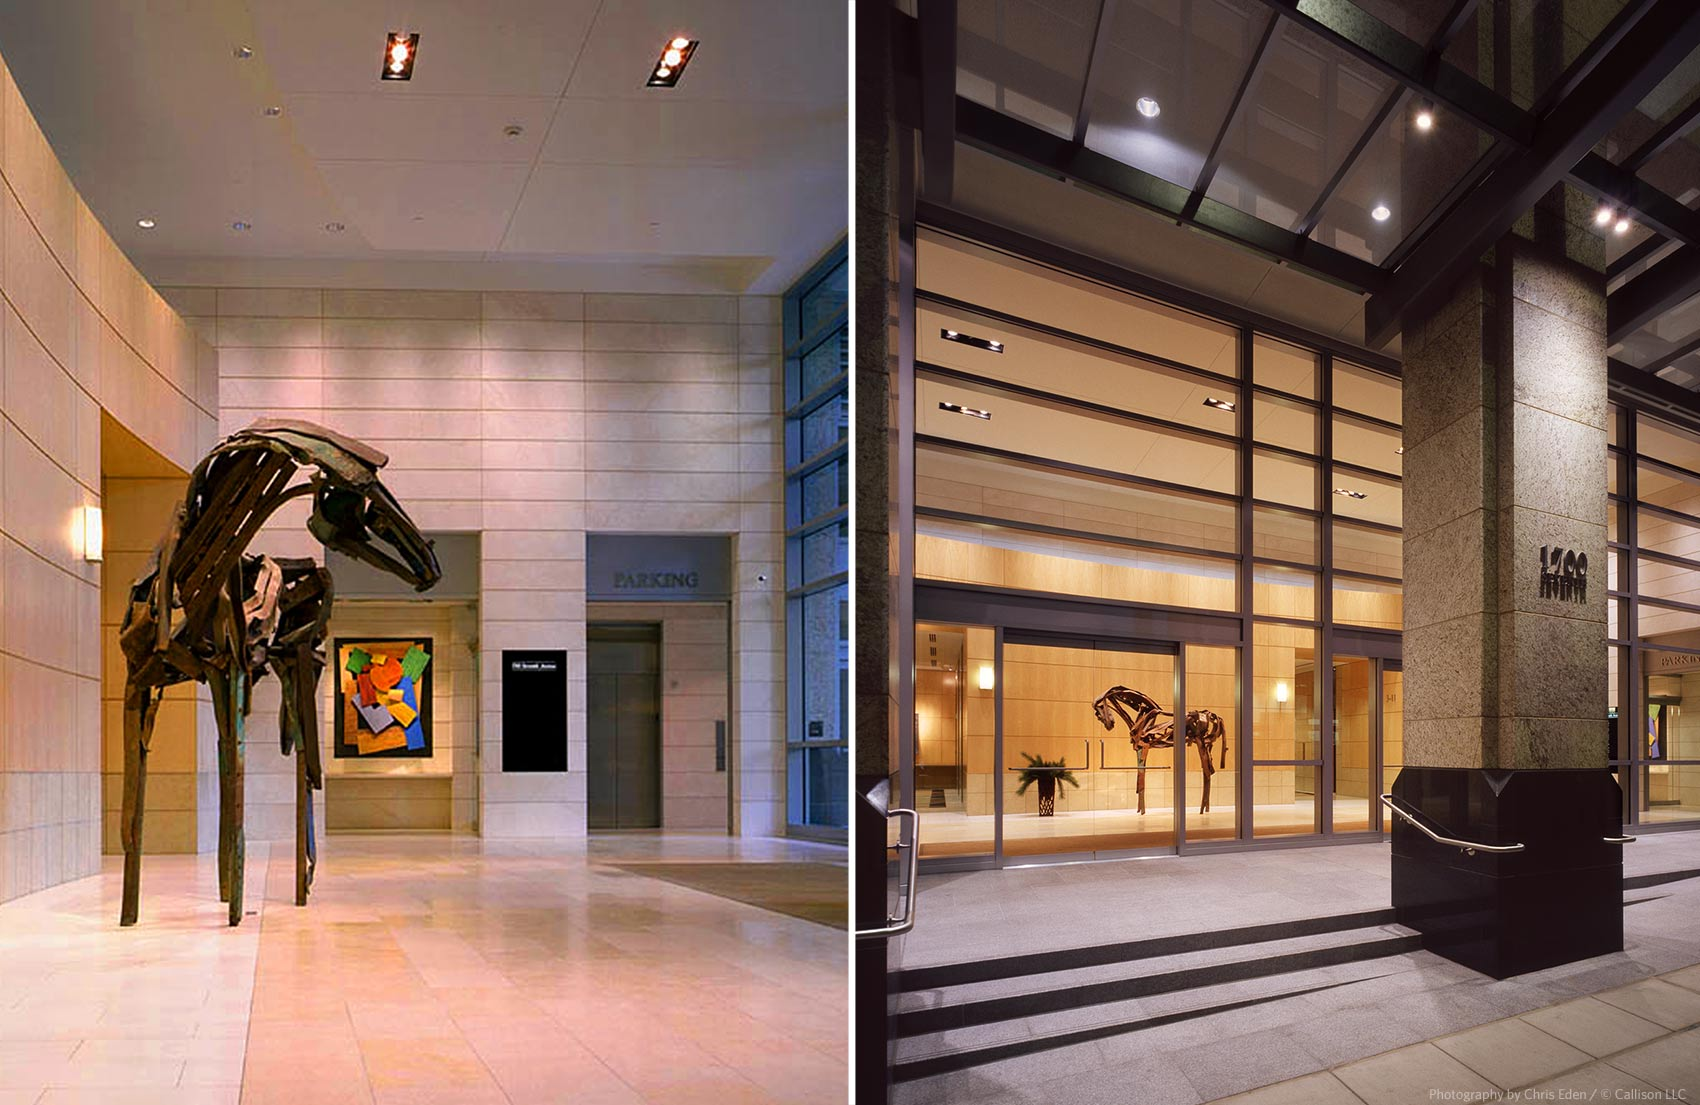 1700 7th Ave - Entrance lobby and art details